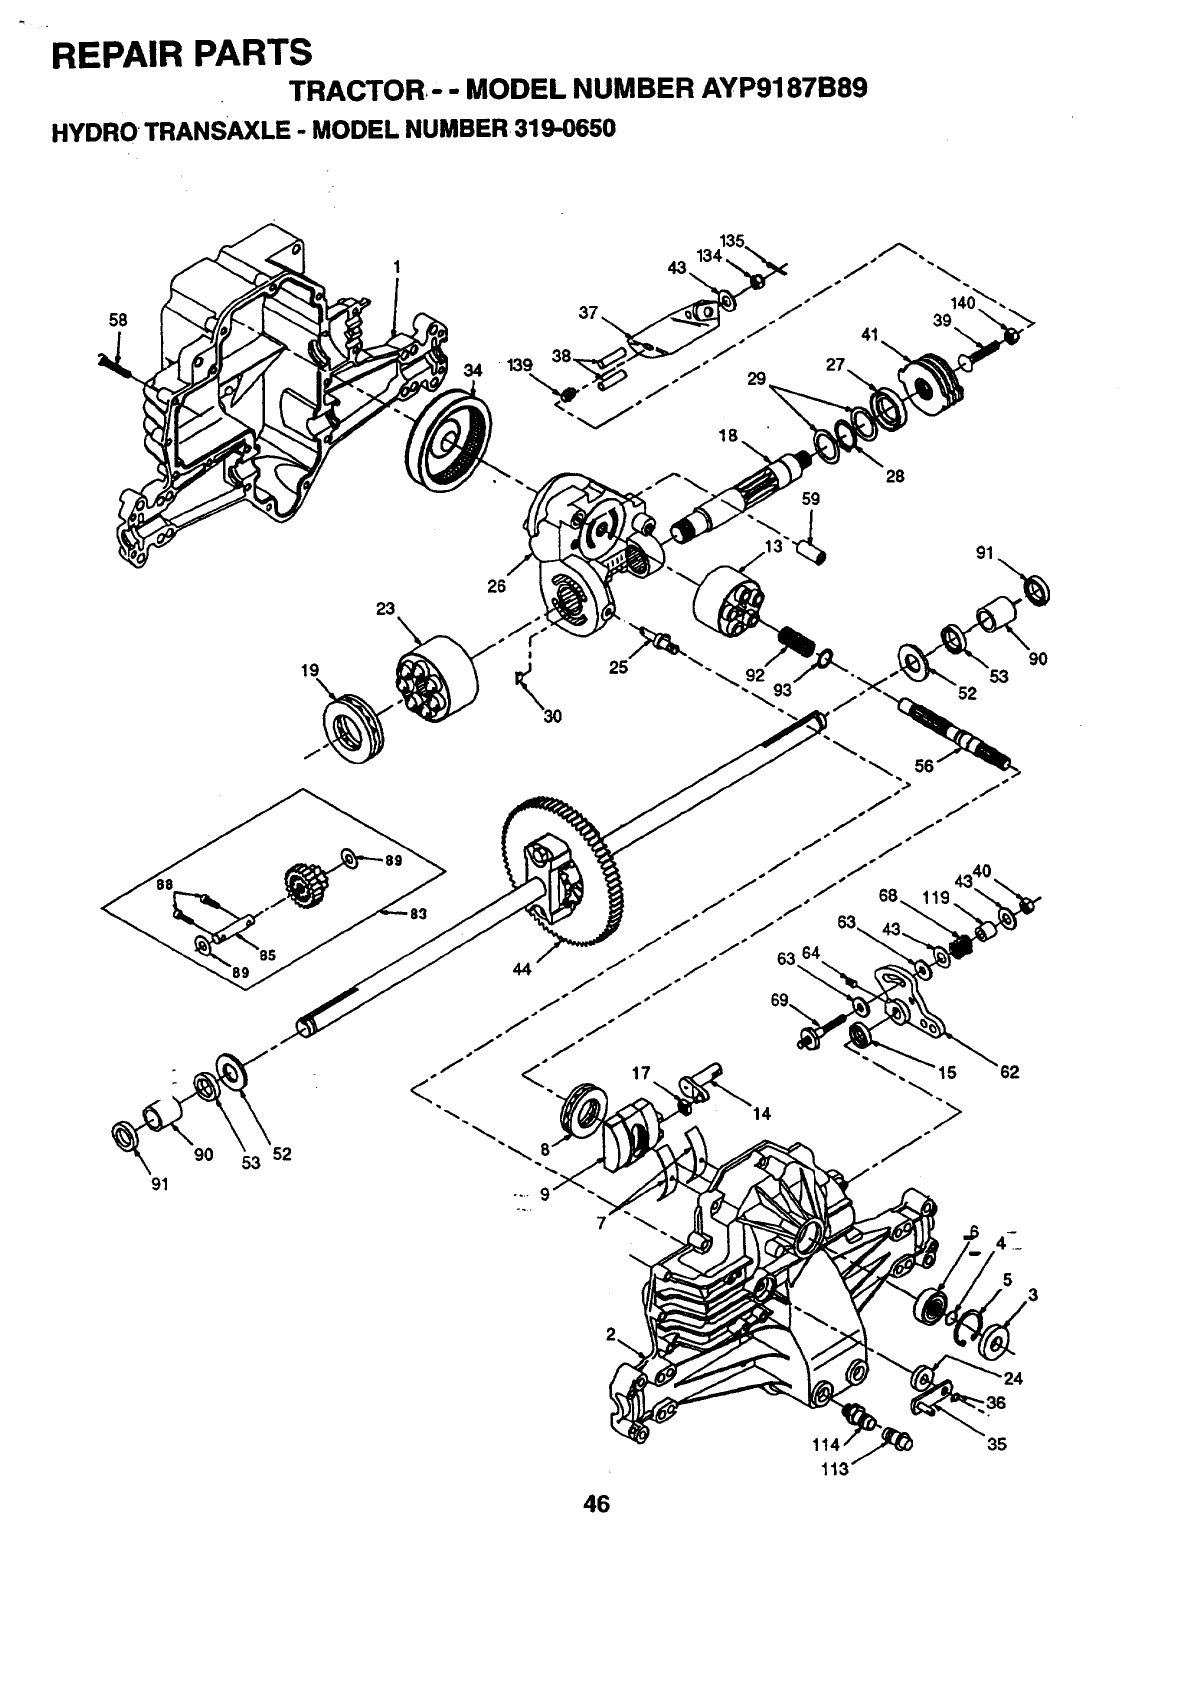 Western Auto AYP9187B89 User Manual WIZARD LAWN TRACTOR